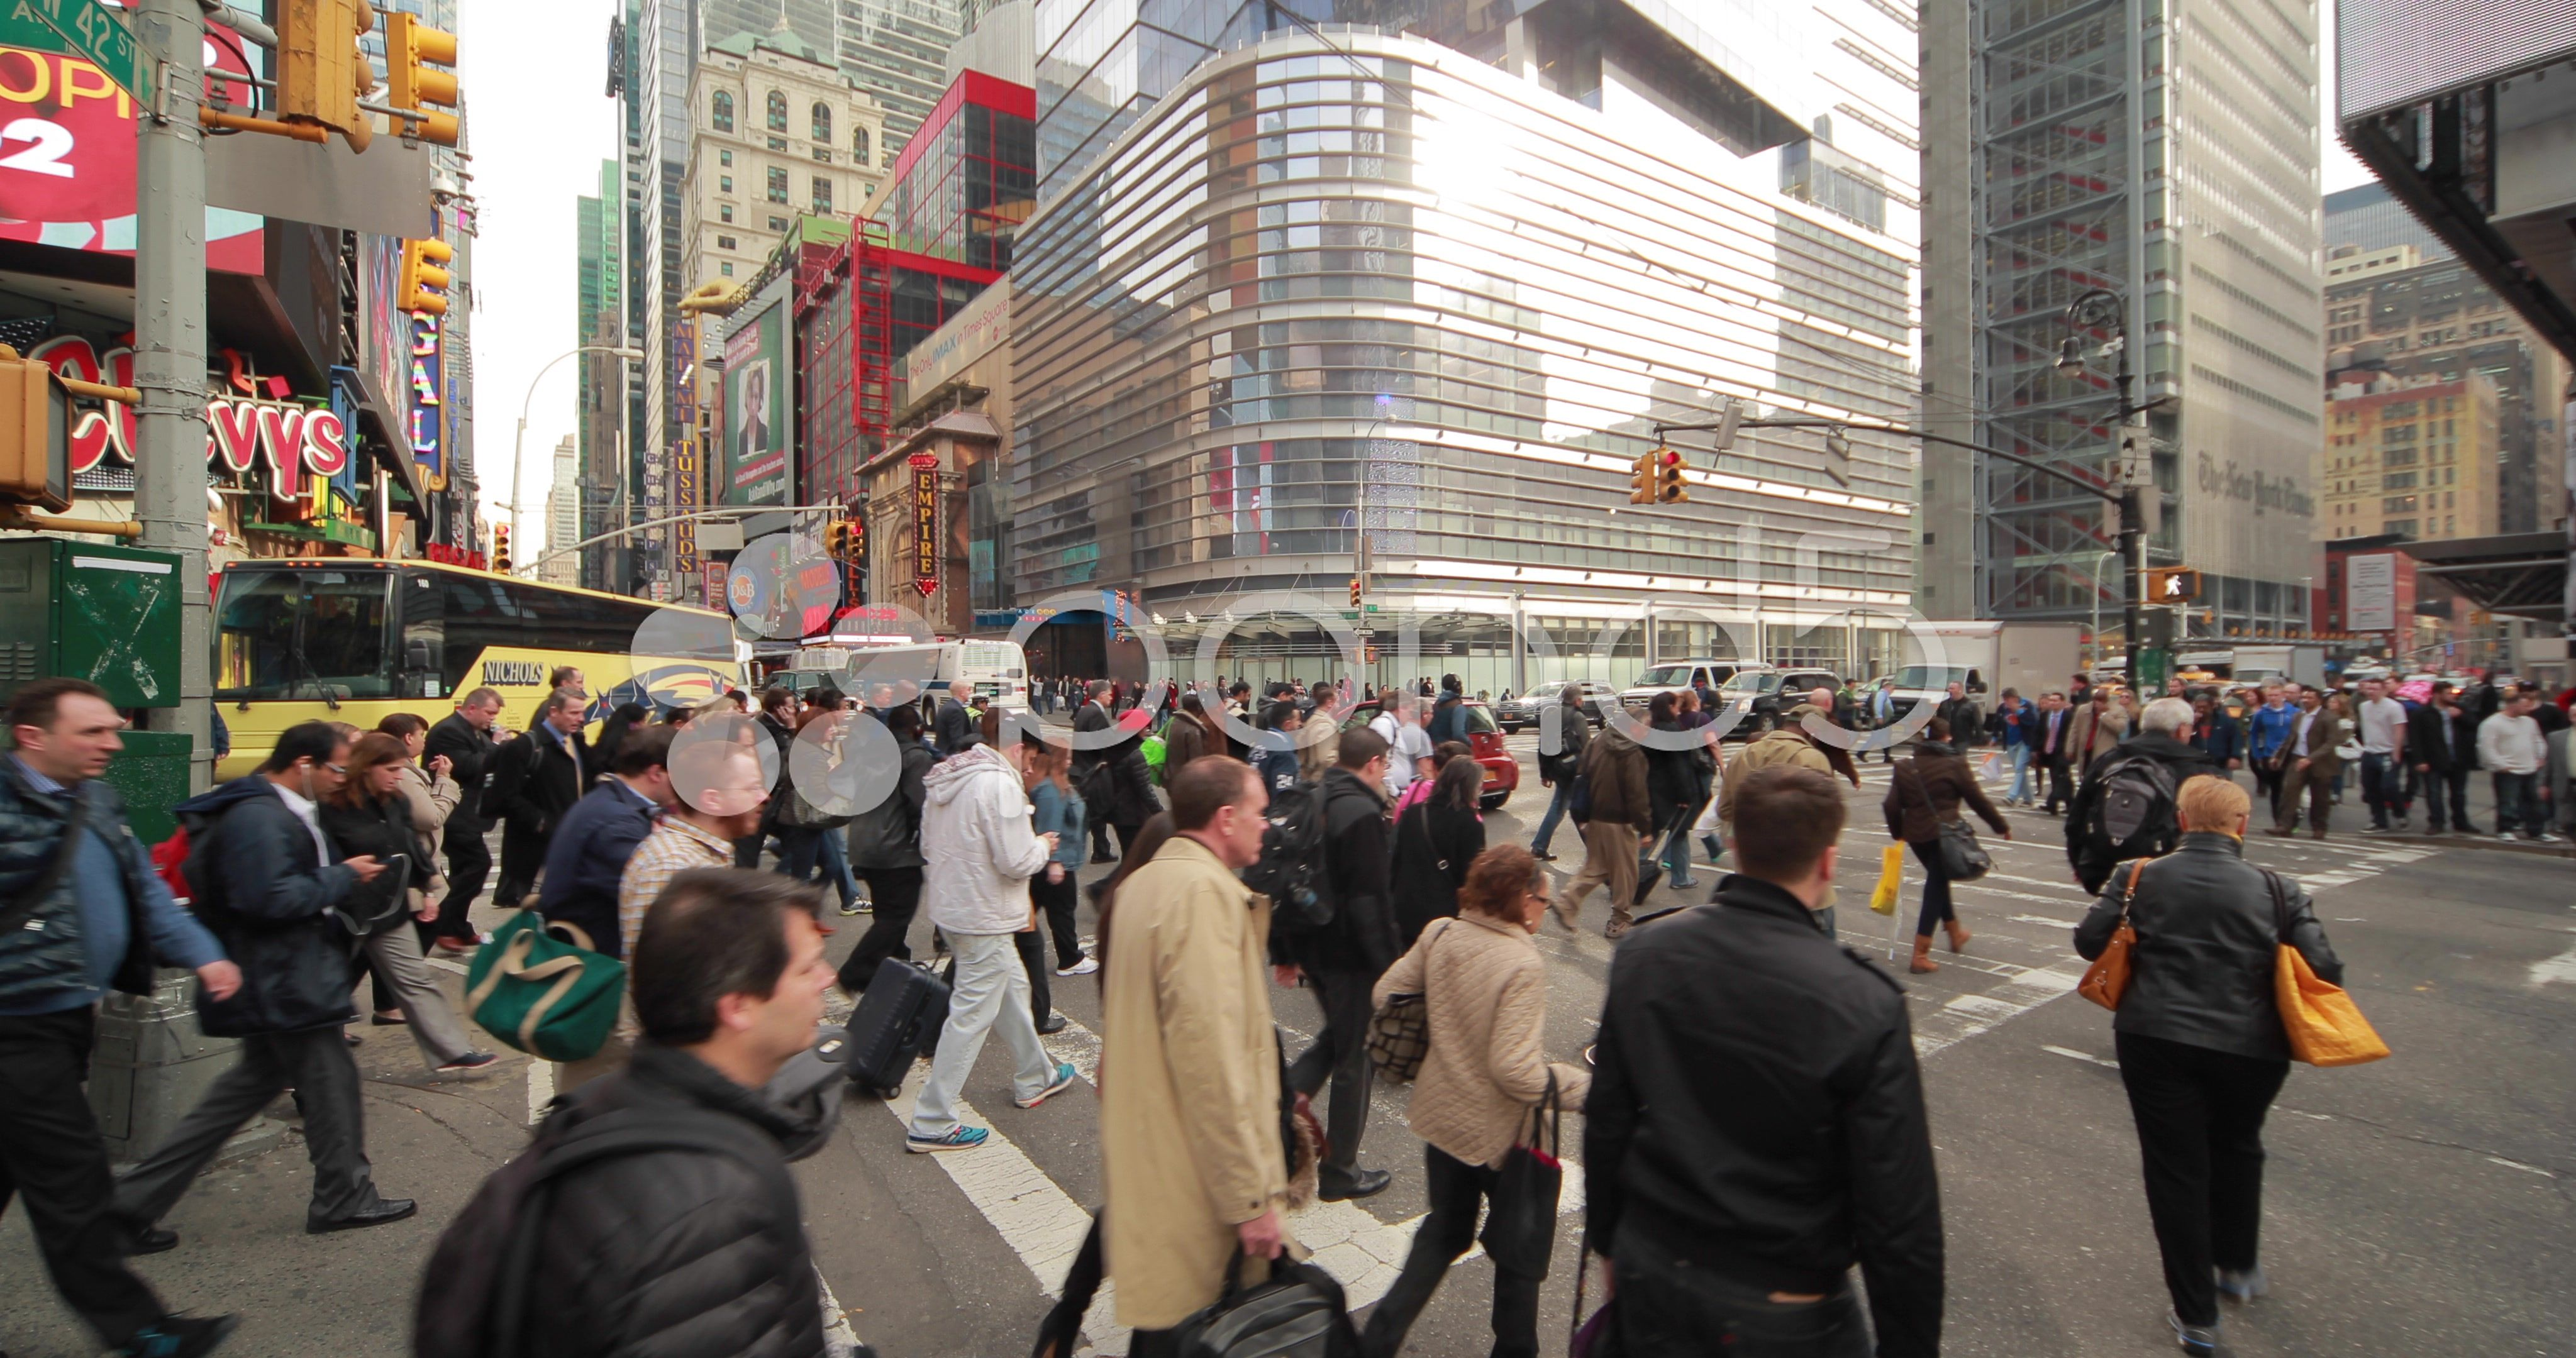 Crowd of people walking crossing intersection street time